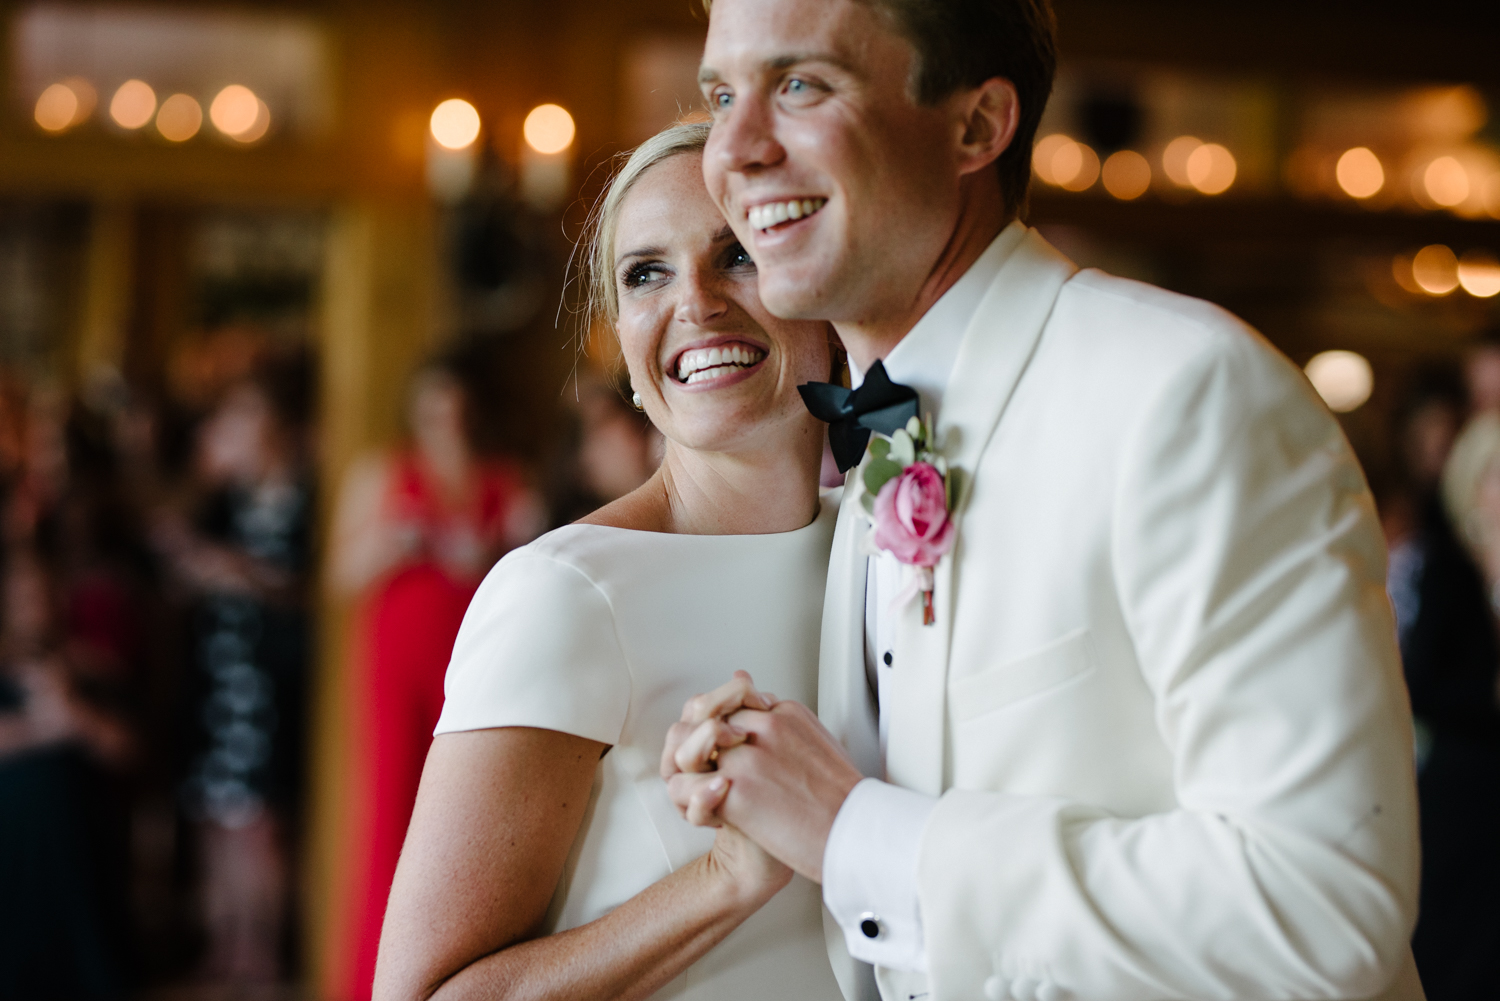 Poetry-&-motion-wedding-photography-elk-river-club-emily-&-chad37.jpg